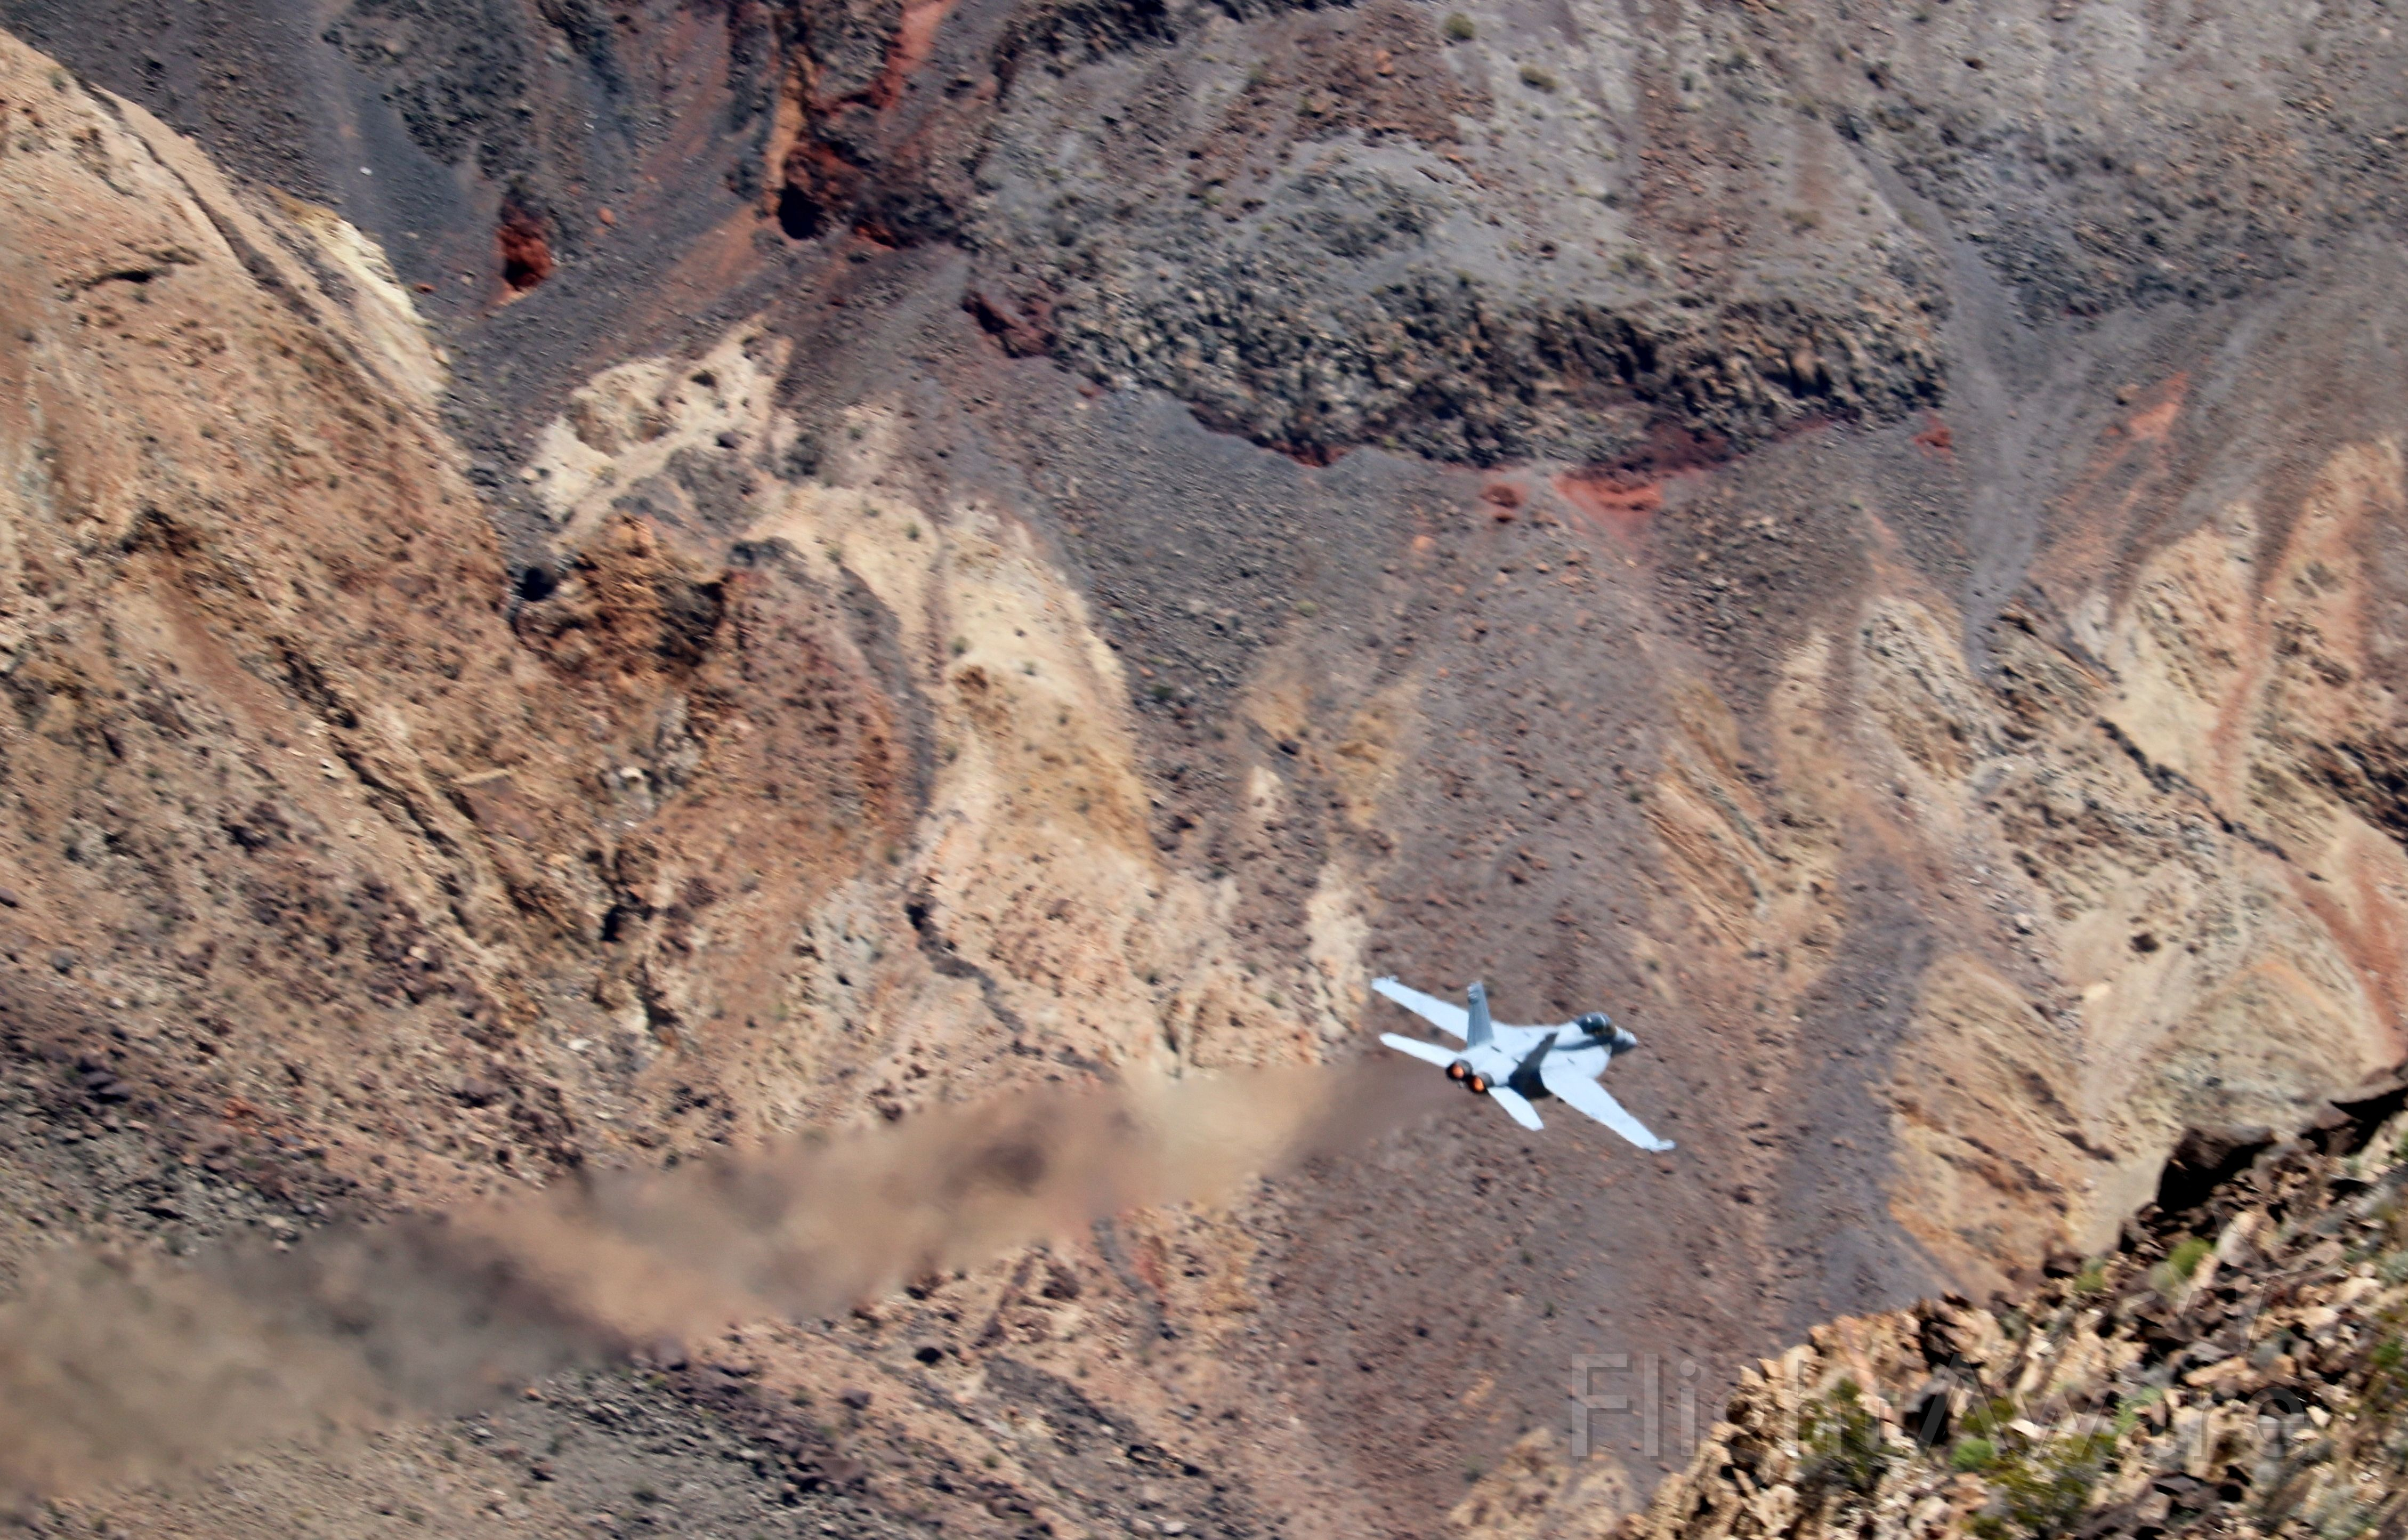 H3 — - Afterburners on in the middle of the Jedi Transition. I took the photo from the Father Crowley Overlook.